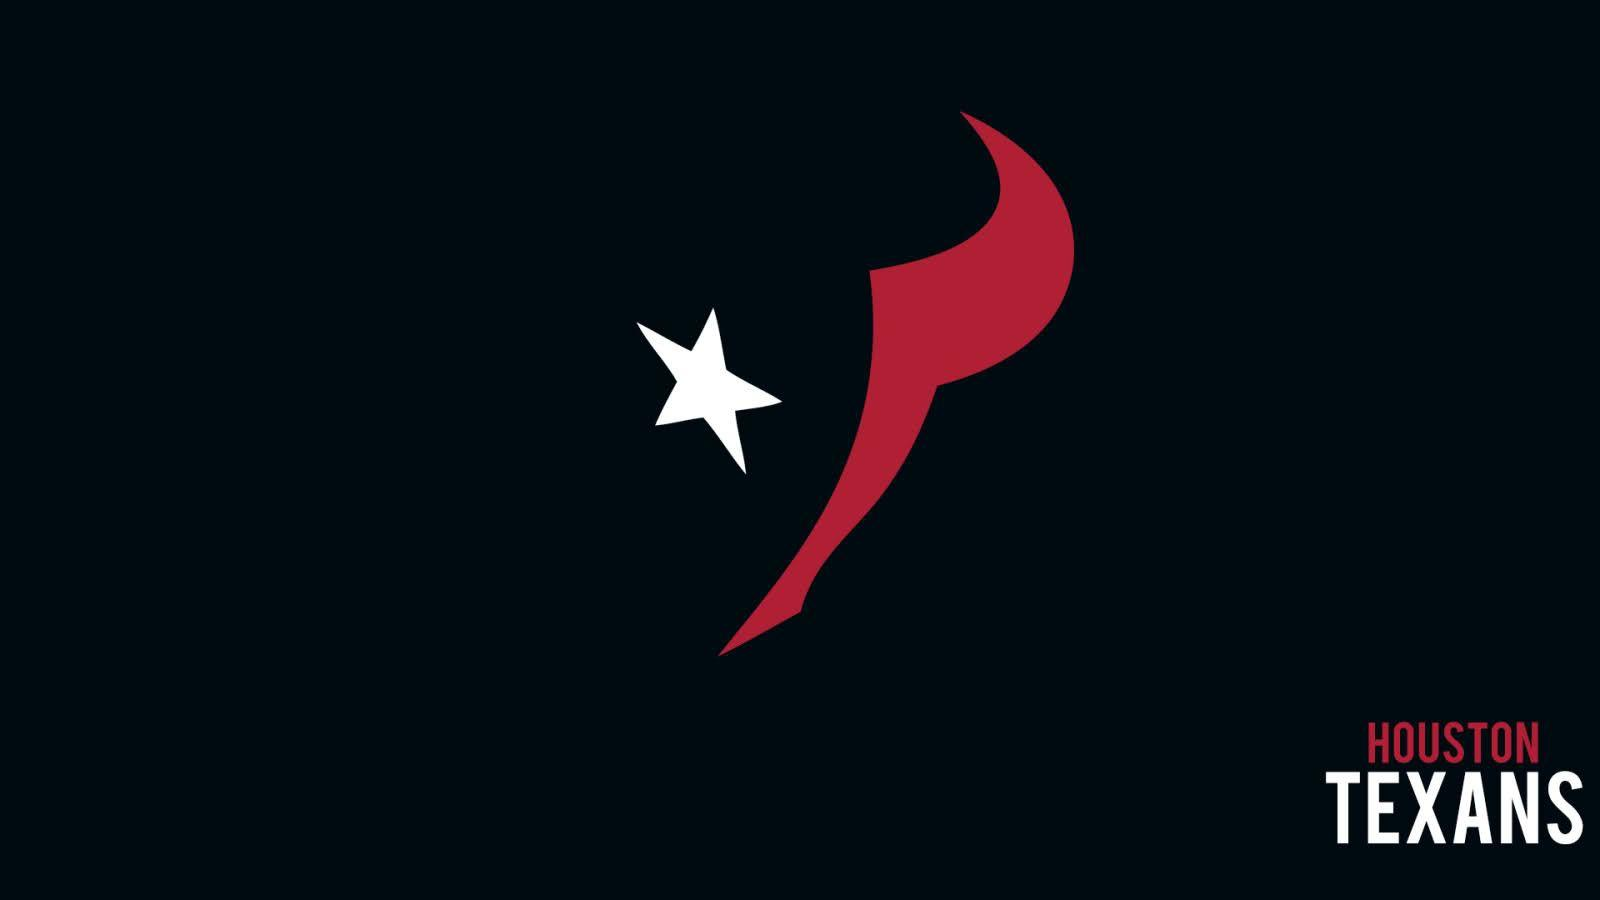 butterfly wings tattoo: houston texans 2012 schedule wallpapers